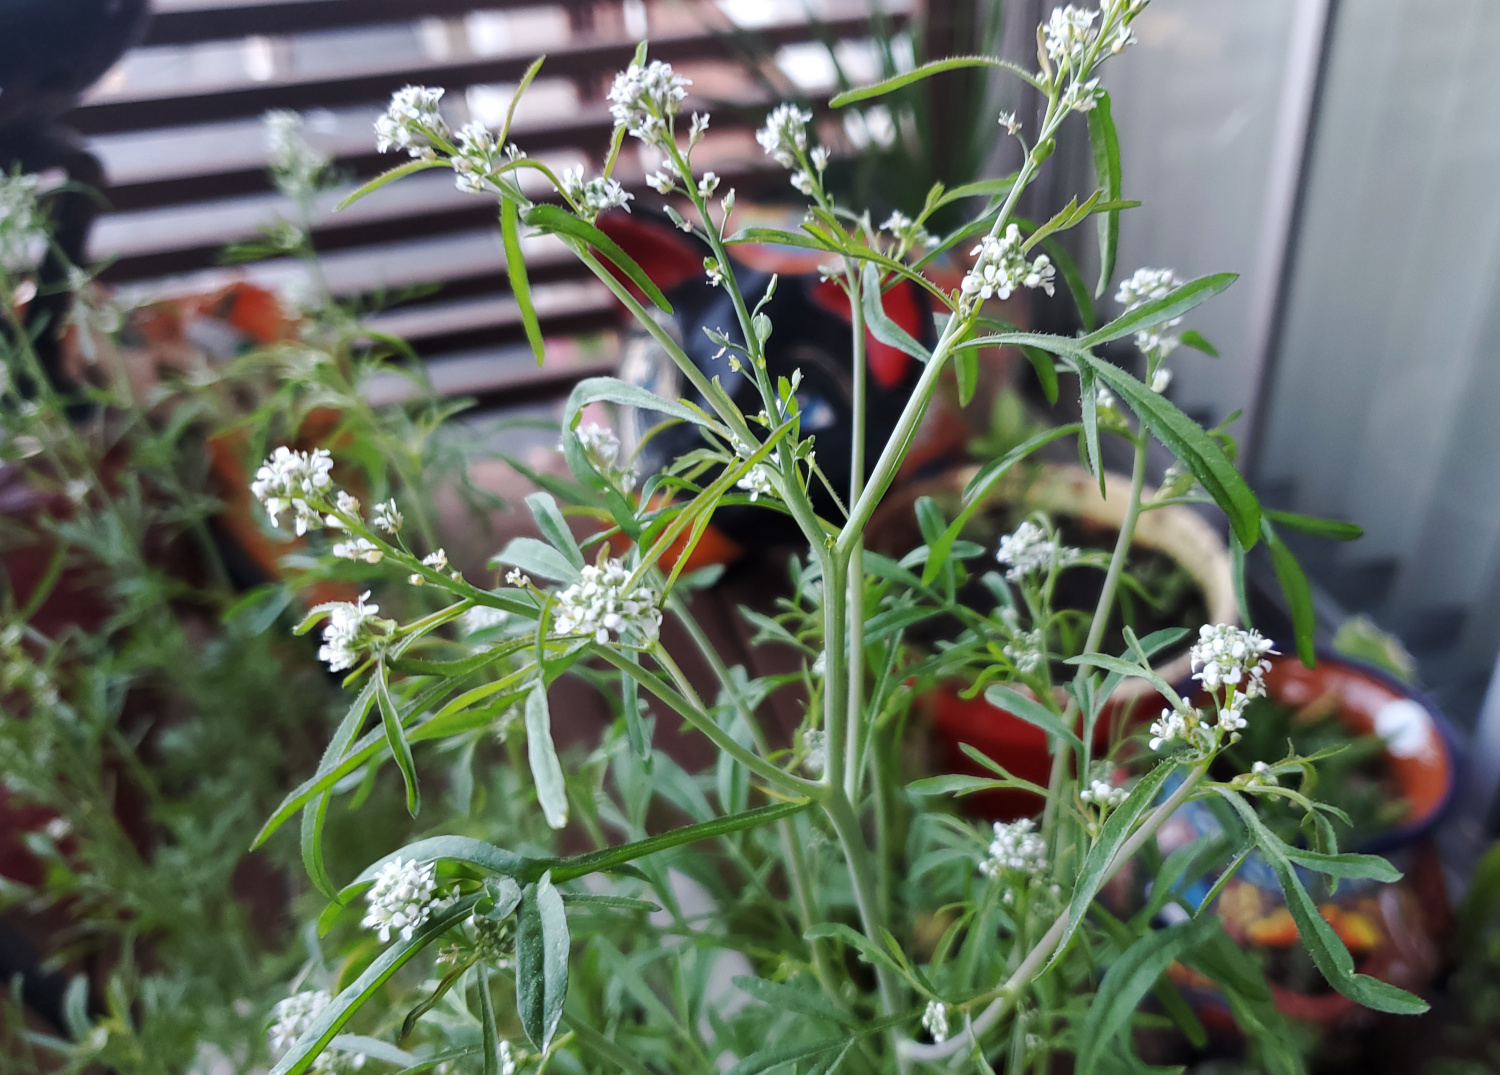 The cress is flowering ferociously in small bursts